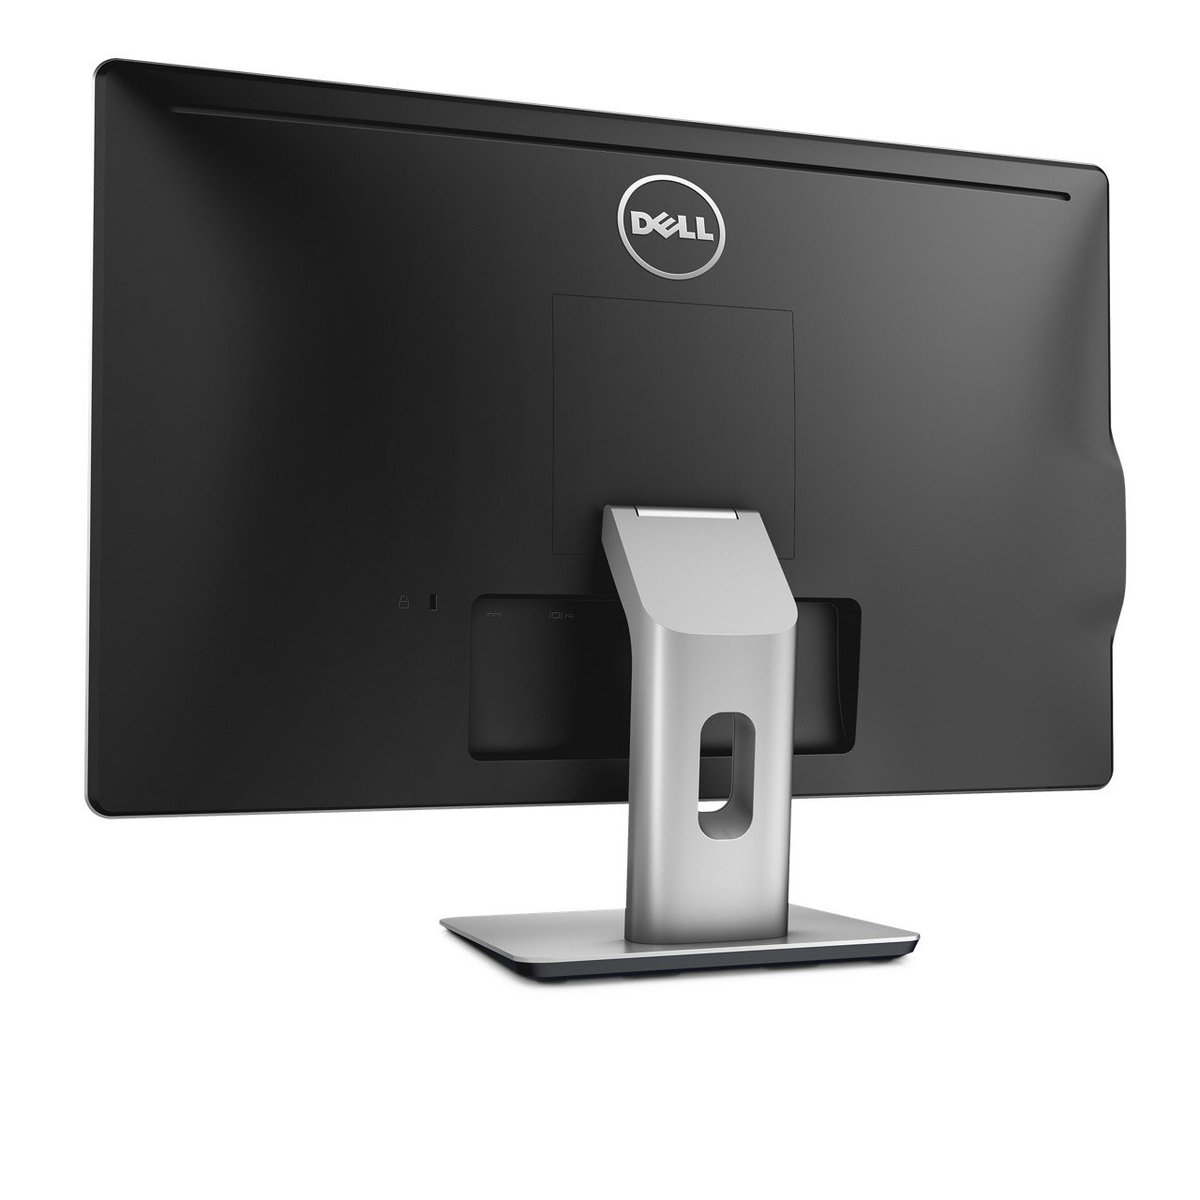 1ef74b7da346 Discount increased - Up to 67% off Wyse Sale extended! Take 27% off any   DellOutlet  Wyse Thin Client in stock.  FreeShipping and warranty included.